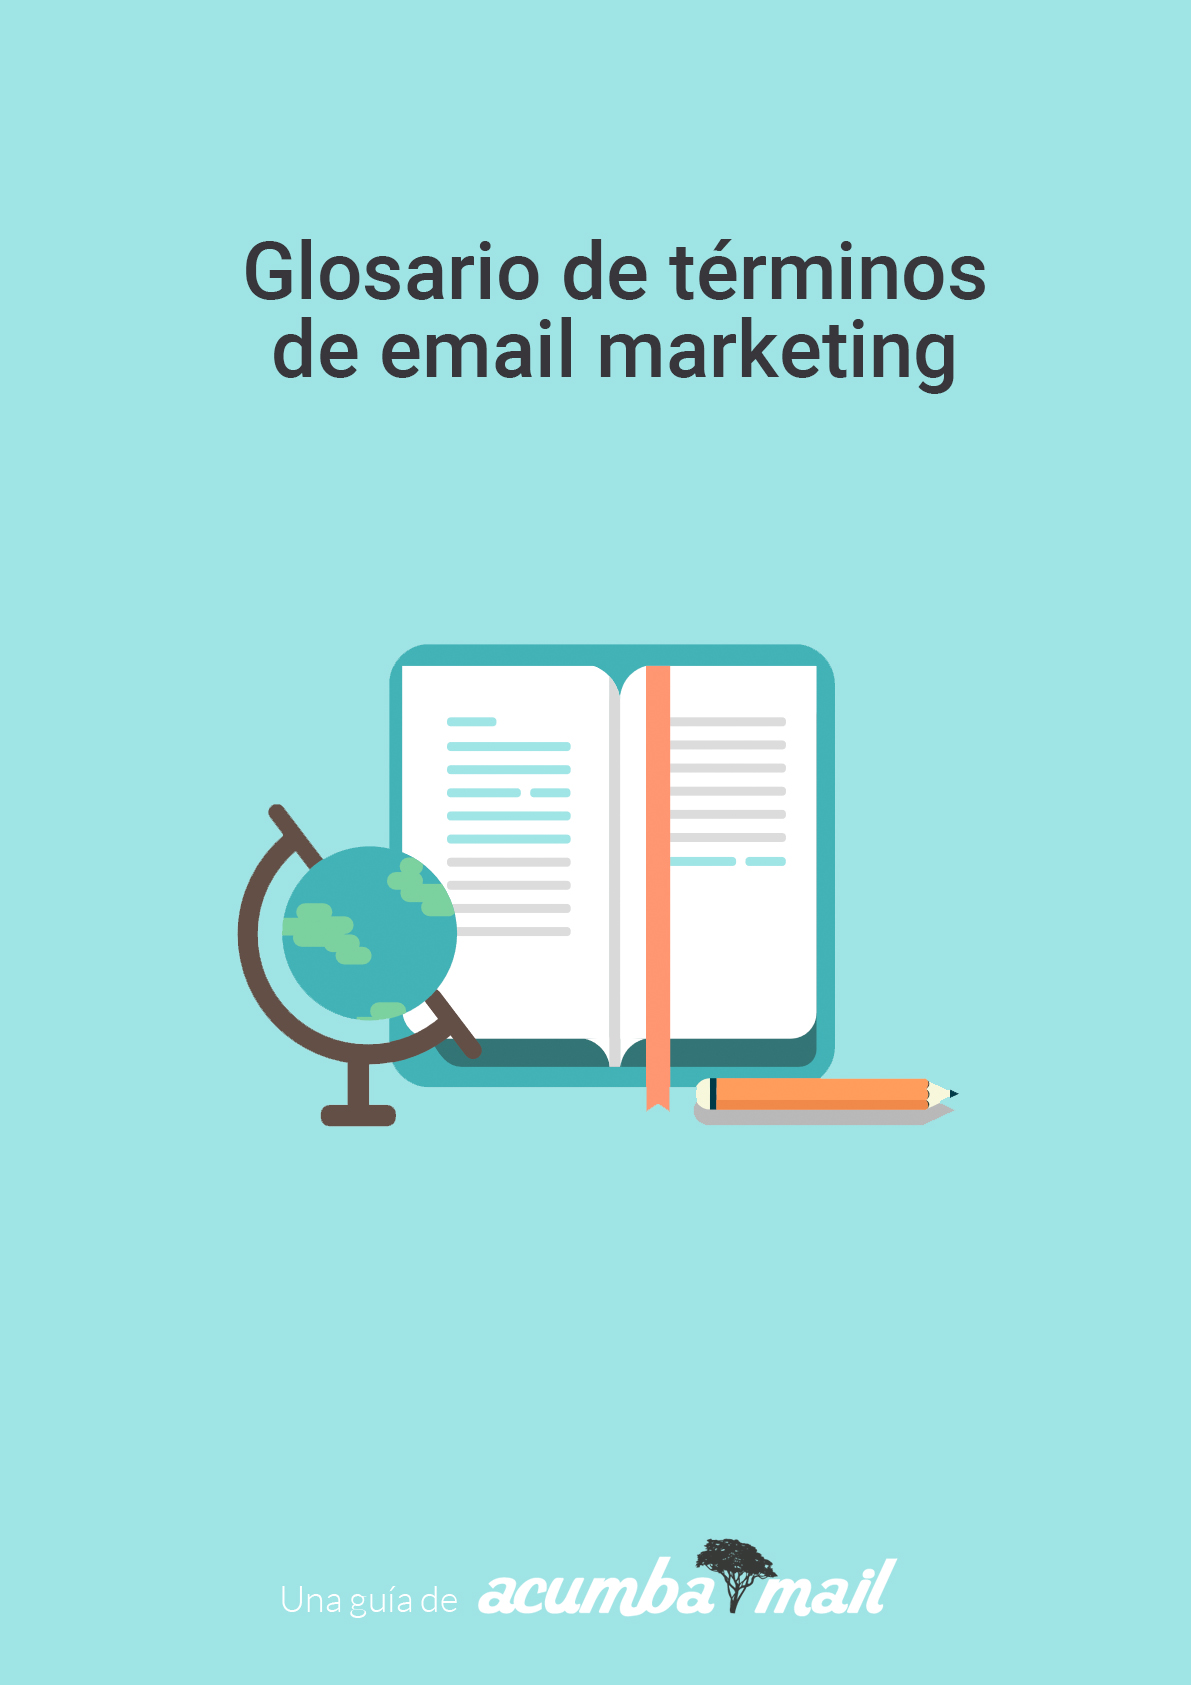 Glosario de términos de email marketing